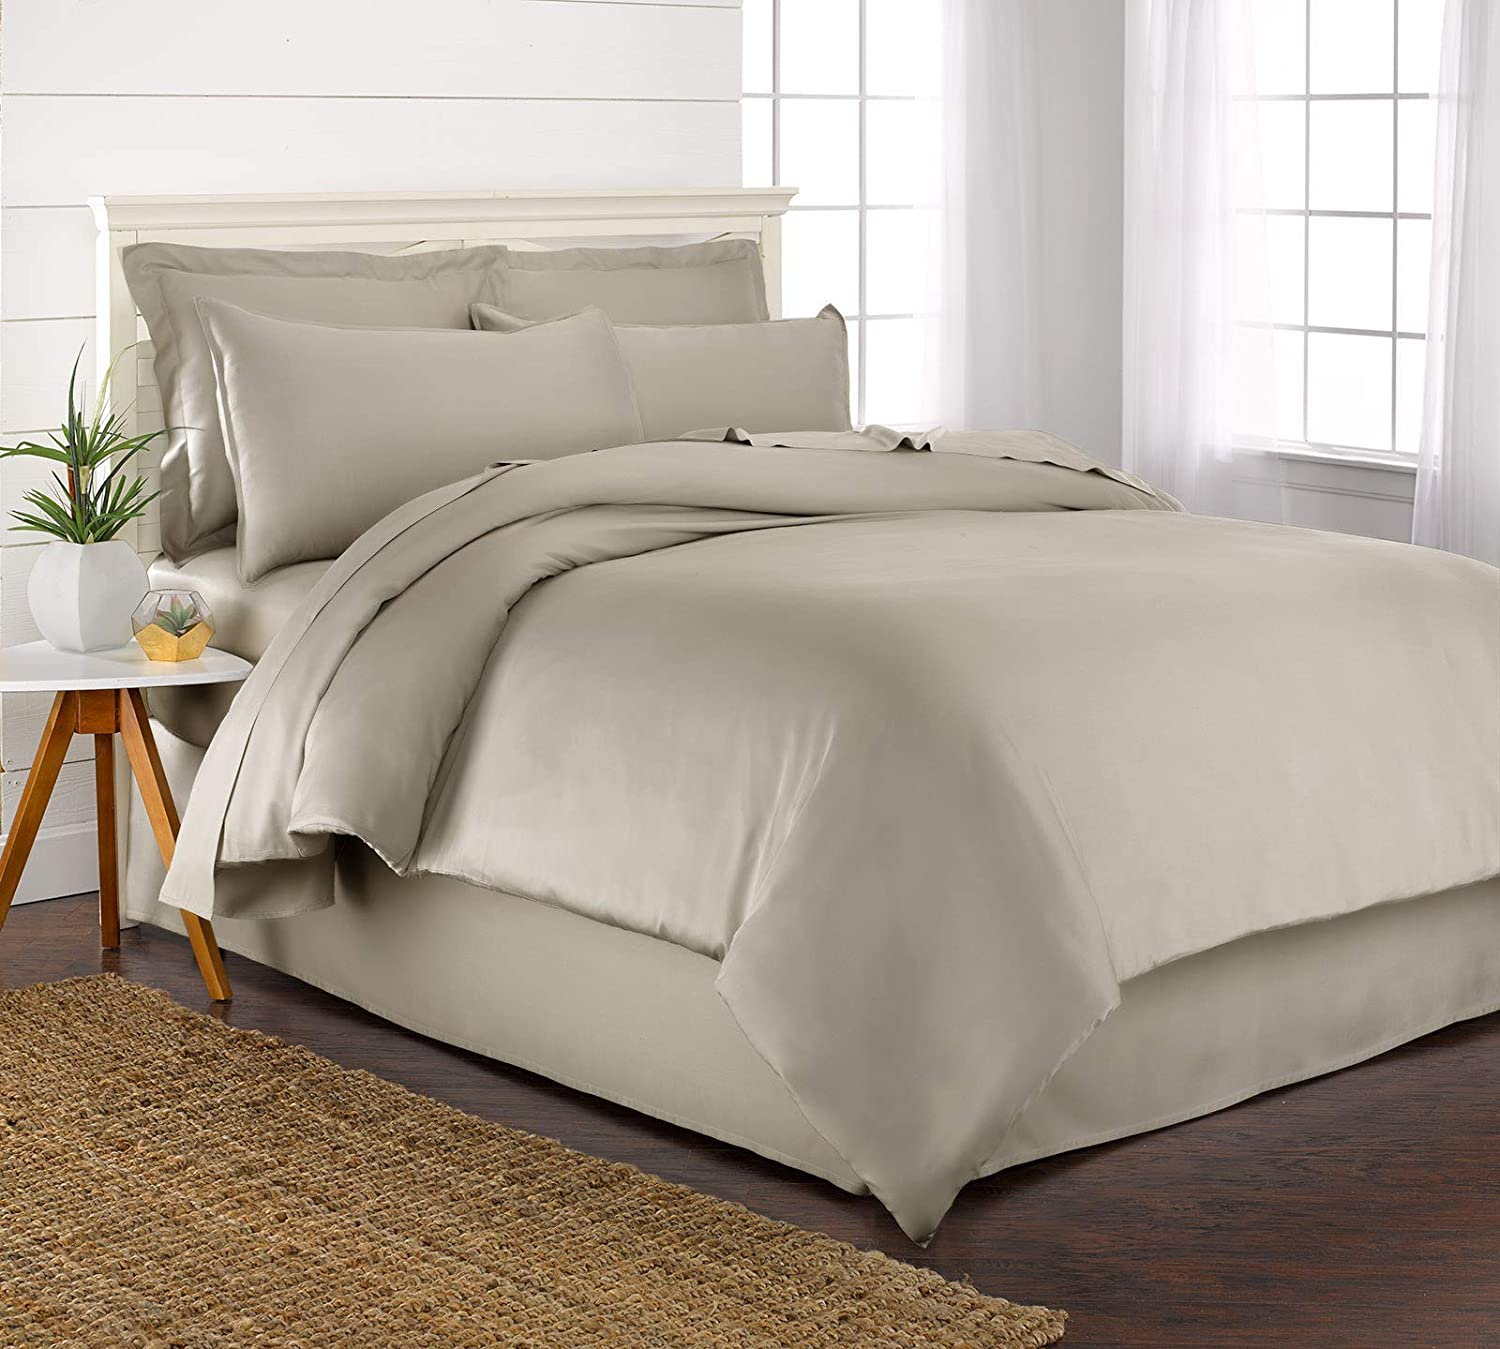 - 100/% Organic Bamboo Bed Skirt with 16 Drop Incredibly Soft /& Smooth 76 x 80 Pure Bamboo King Bed Skirt King, White